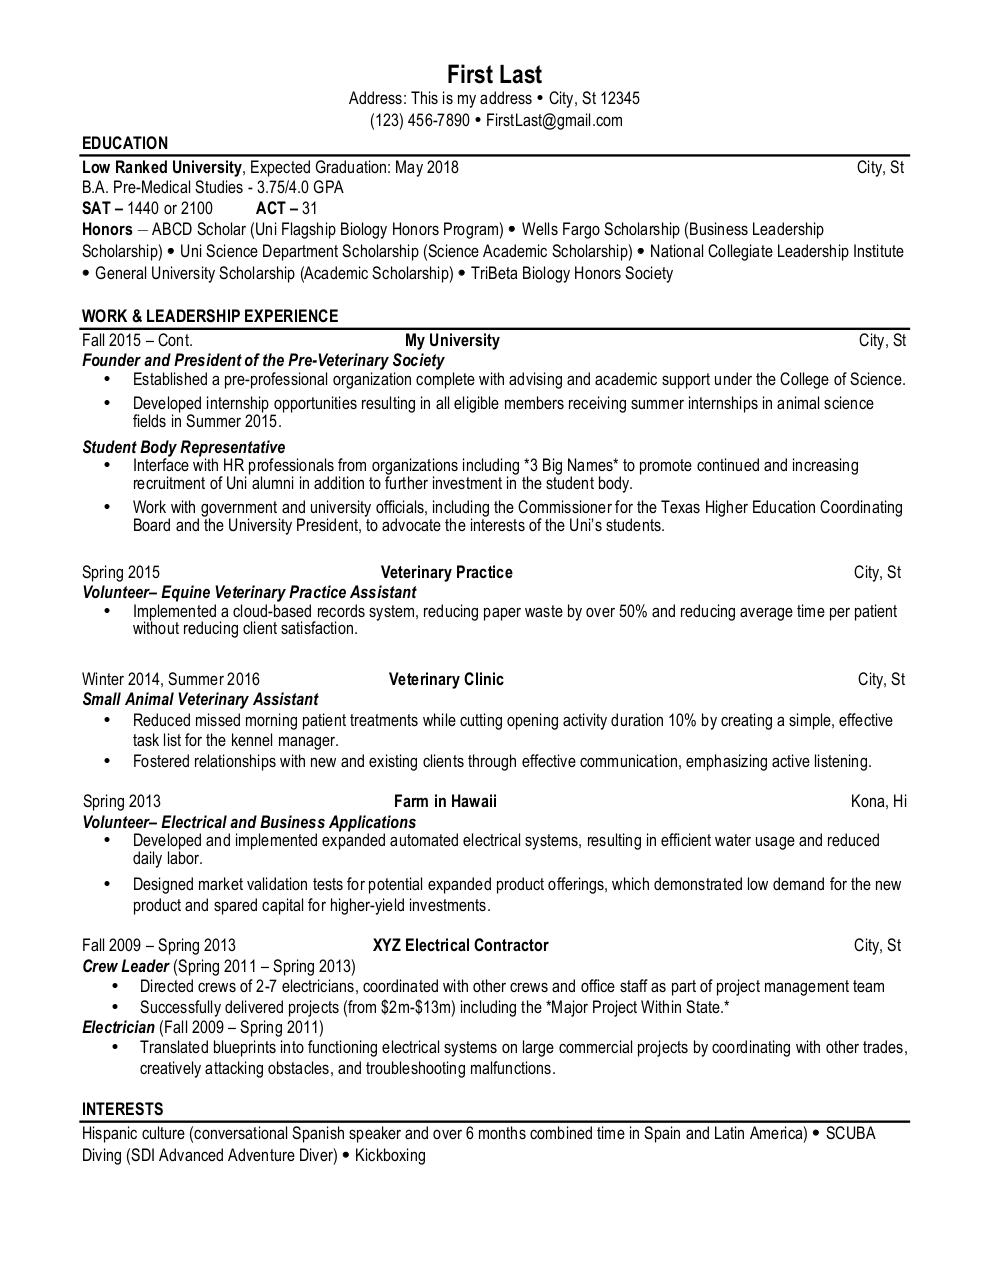 microsoft word reddit resume doc reddit resume pdf pdf archive report spam or adult content